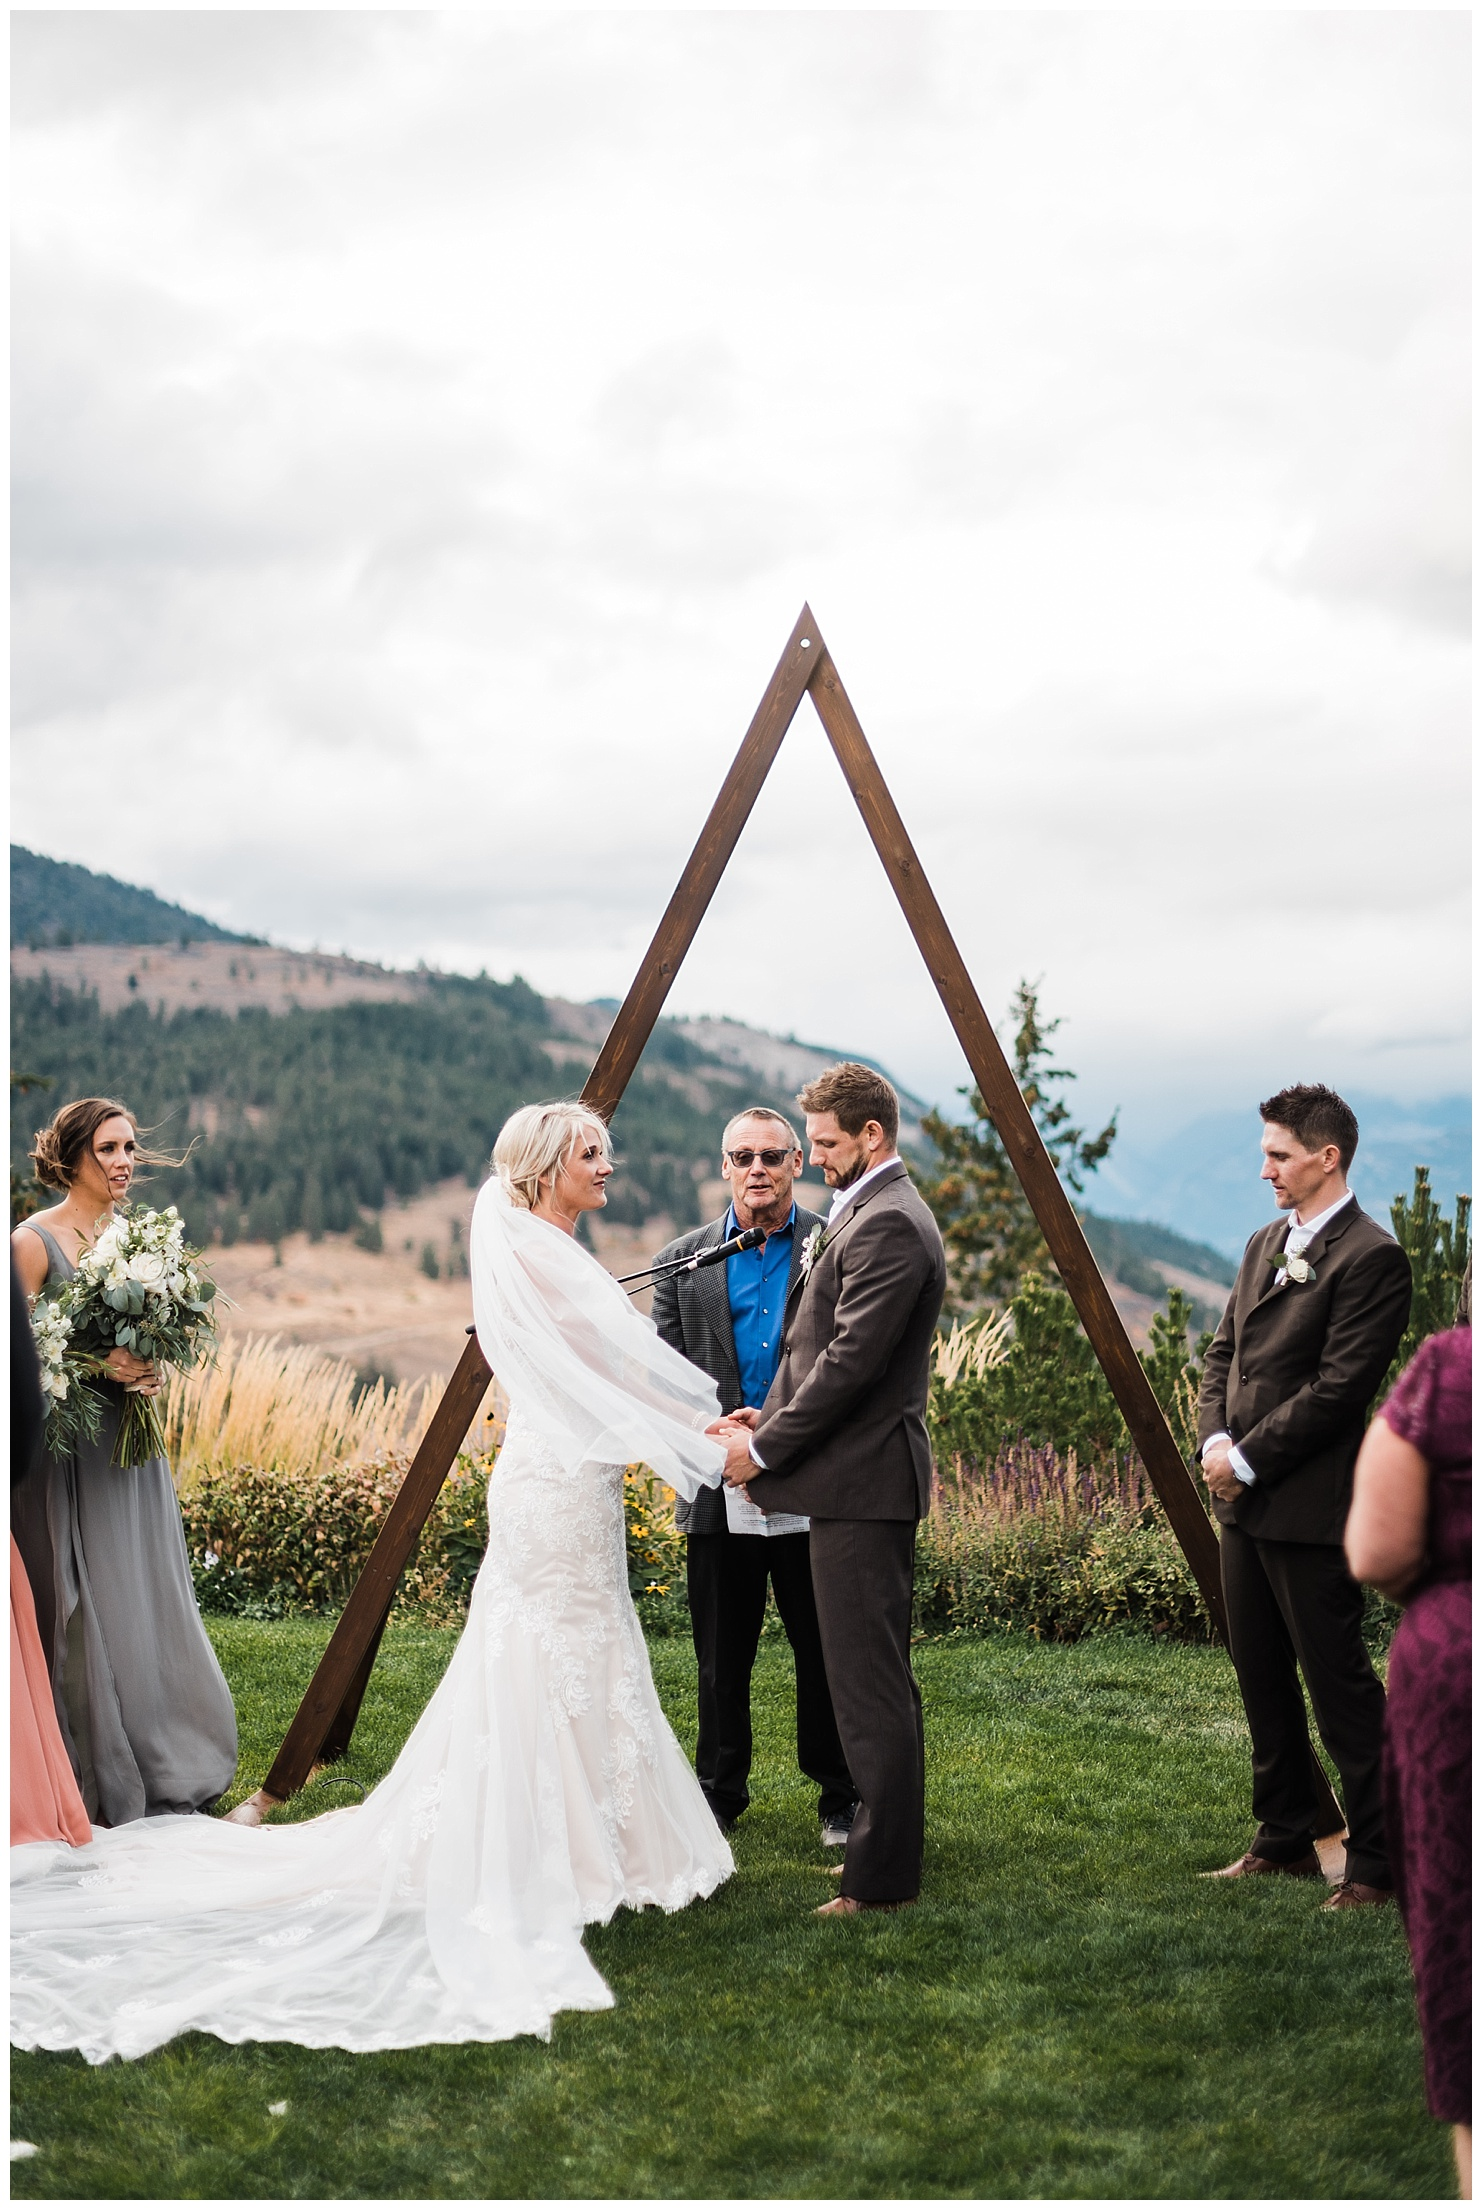 Wedding Ceremony at Sun Mountain Lodge by Forthright Photo